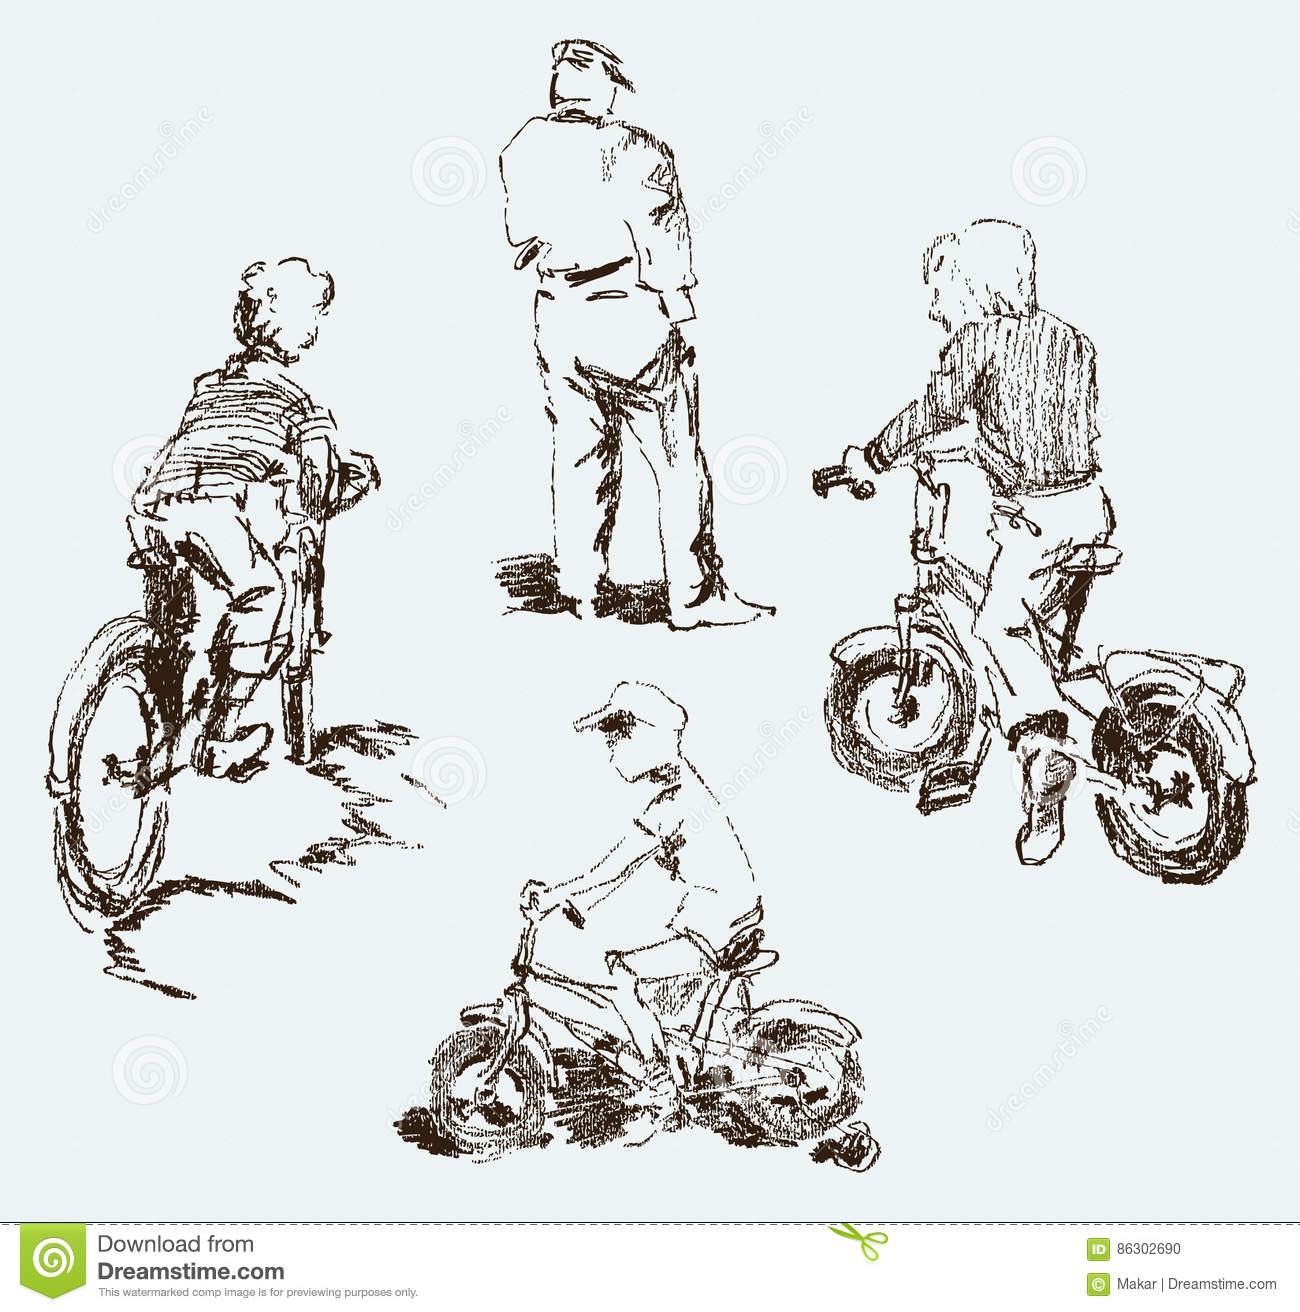 sketches of the kids on the bikes in the city street - Sketches Of Kids